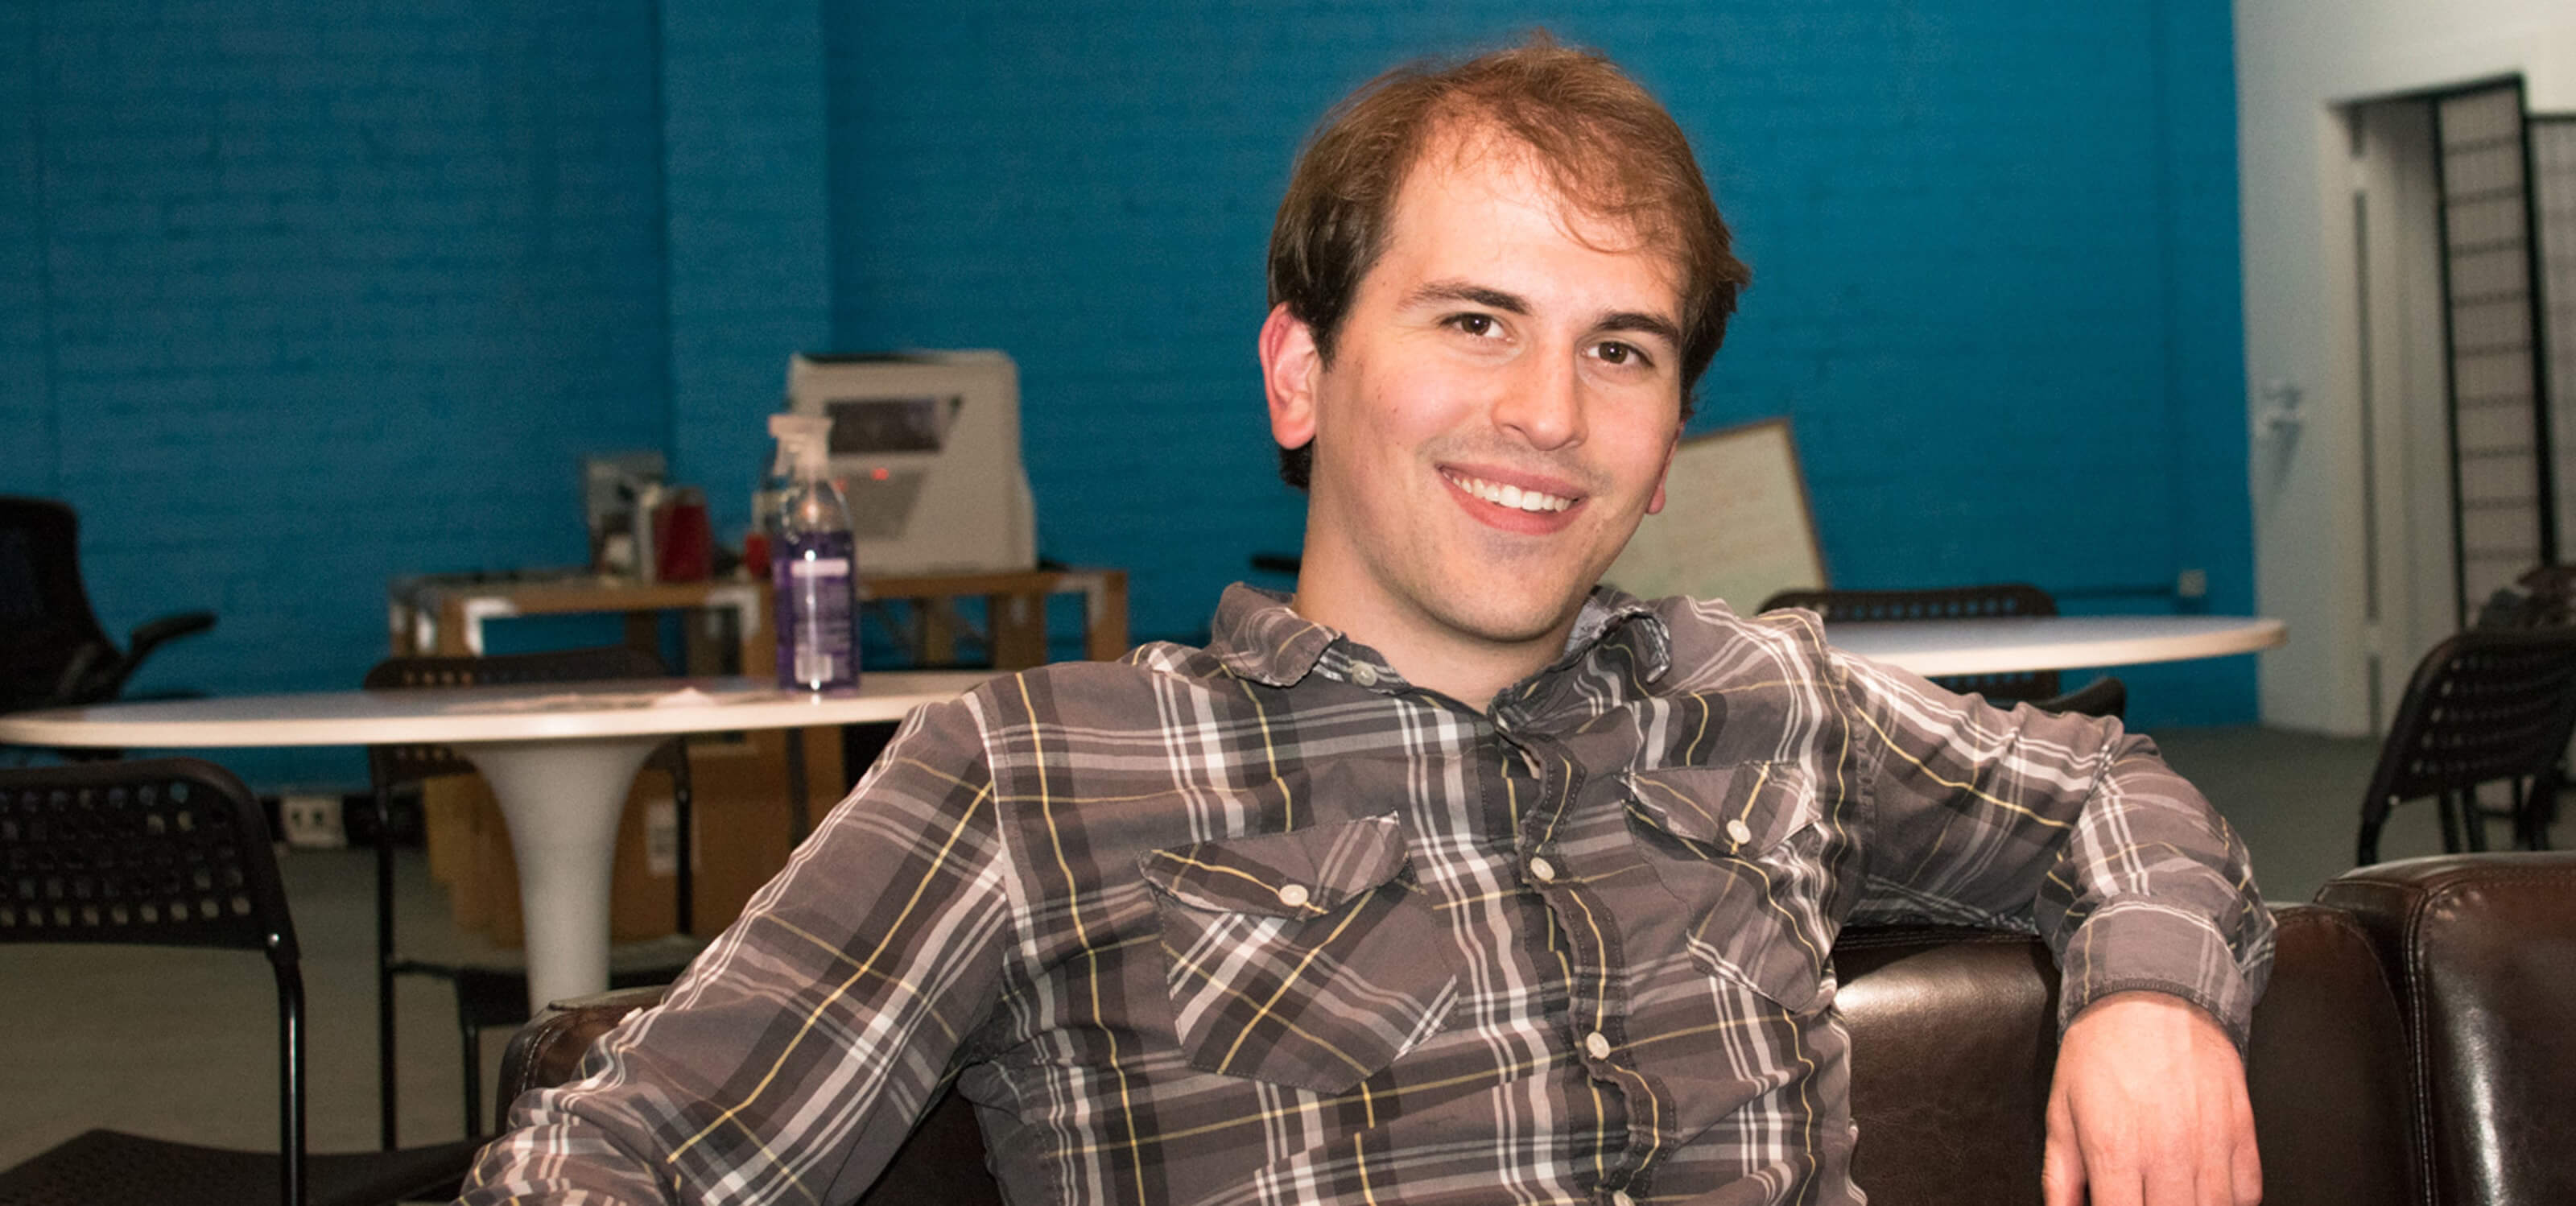 DigiPen alumnus Logan Fieth smiling while sitting on a couch